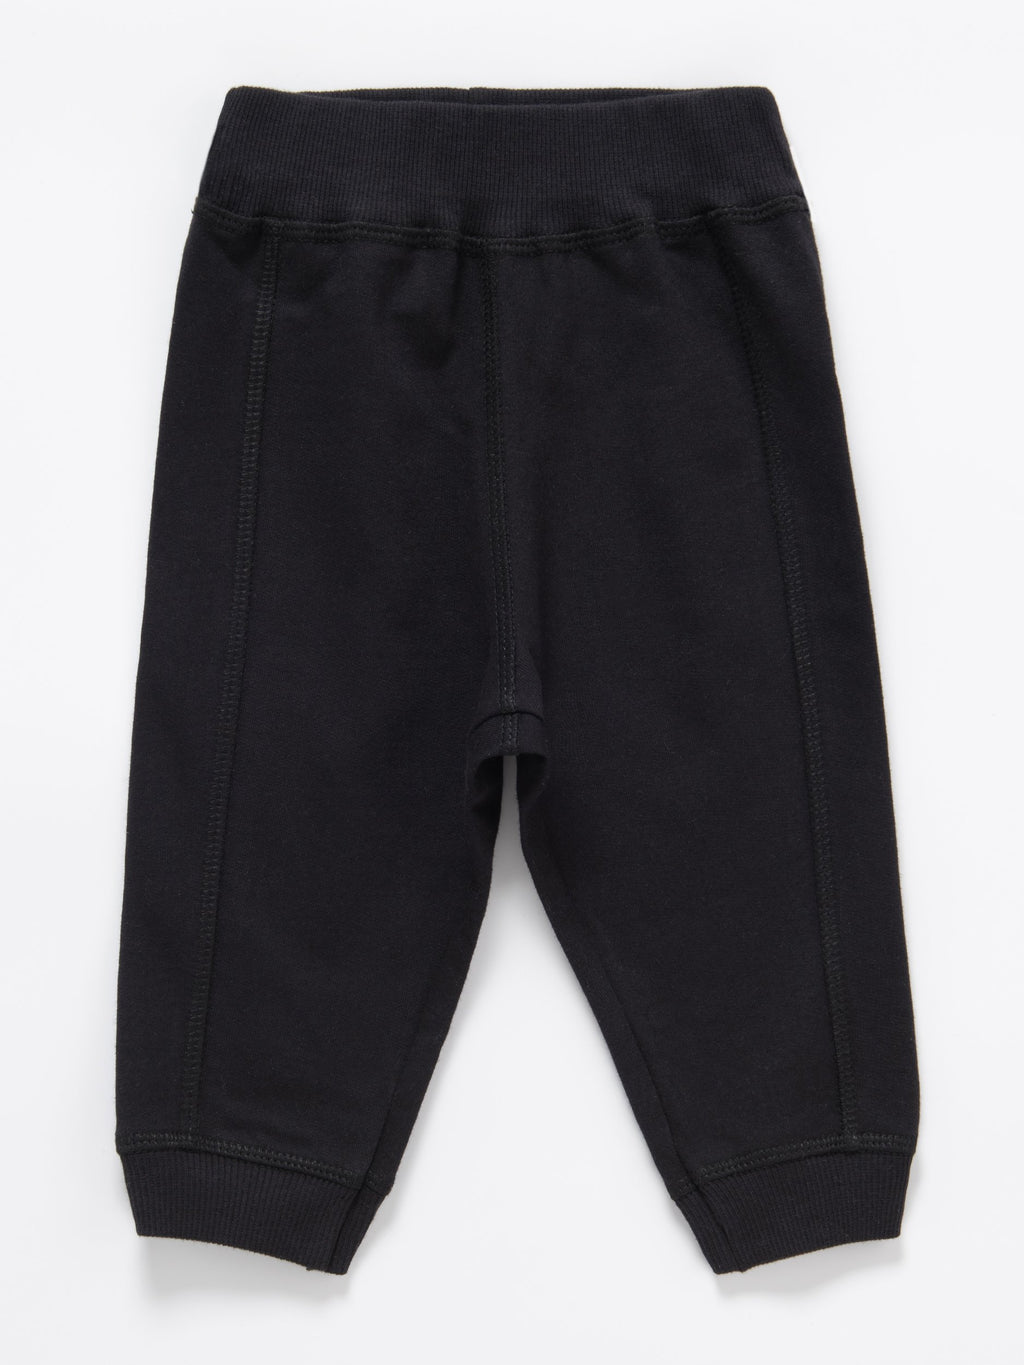 Artie - French Terry Black Unisex Joggers - Stylemykid.com